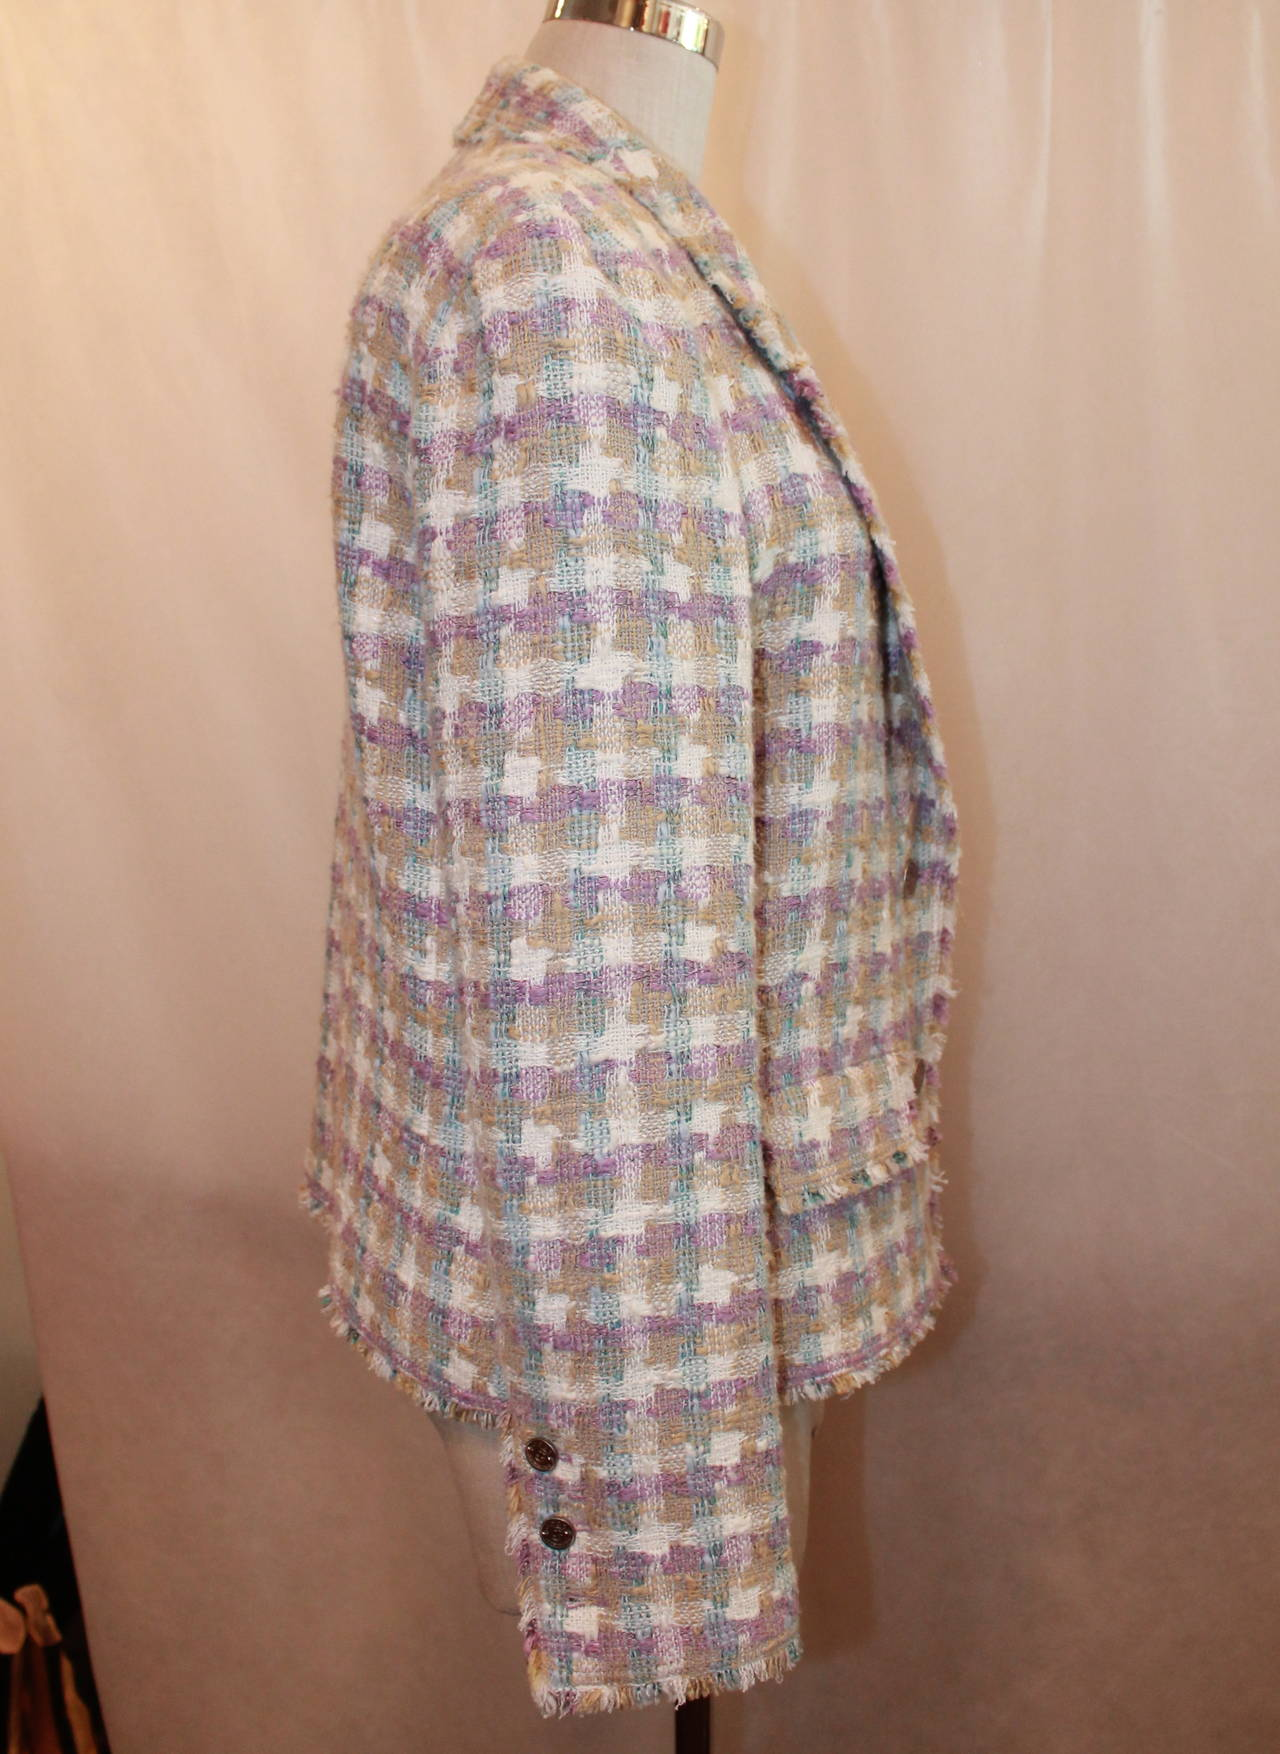 2005 Chanel Multi Color Pastel Tweed Jacket with Mademoiselle Buttons In Excellent Condition For Sale In Palm Beach, FL